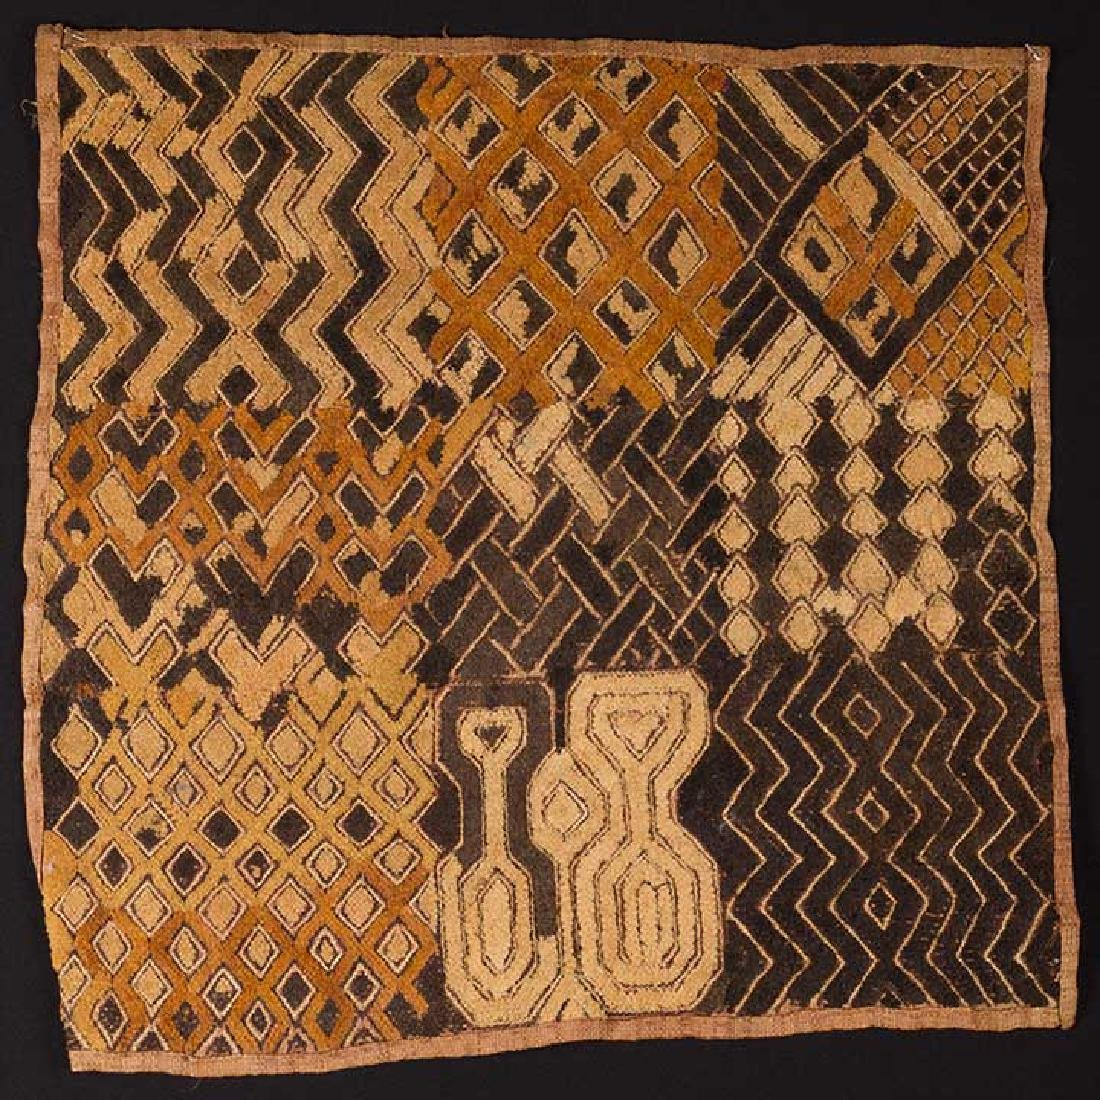 5 AFRICAN TEXTILES, 20th C. - 6